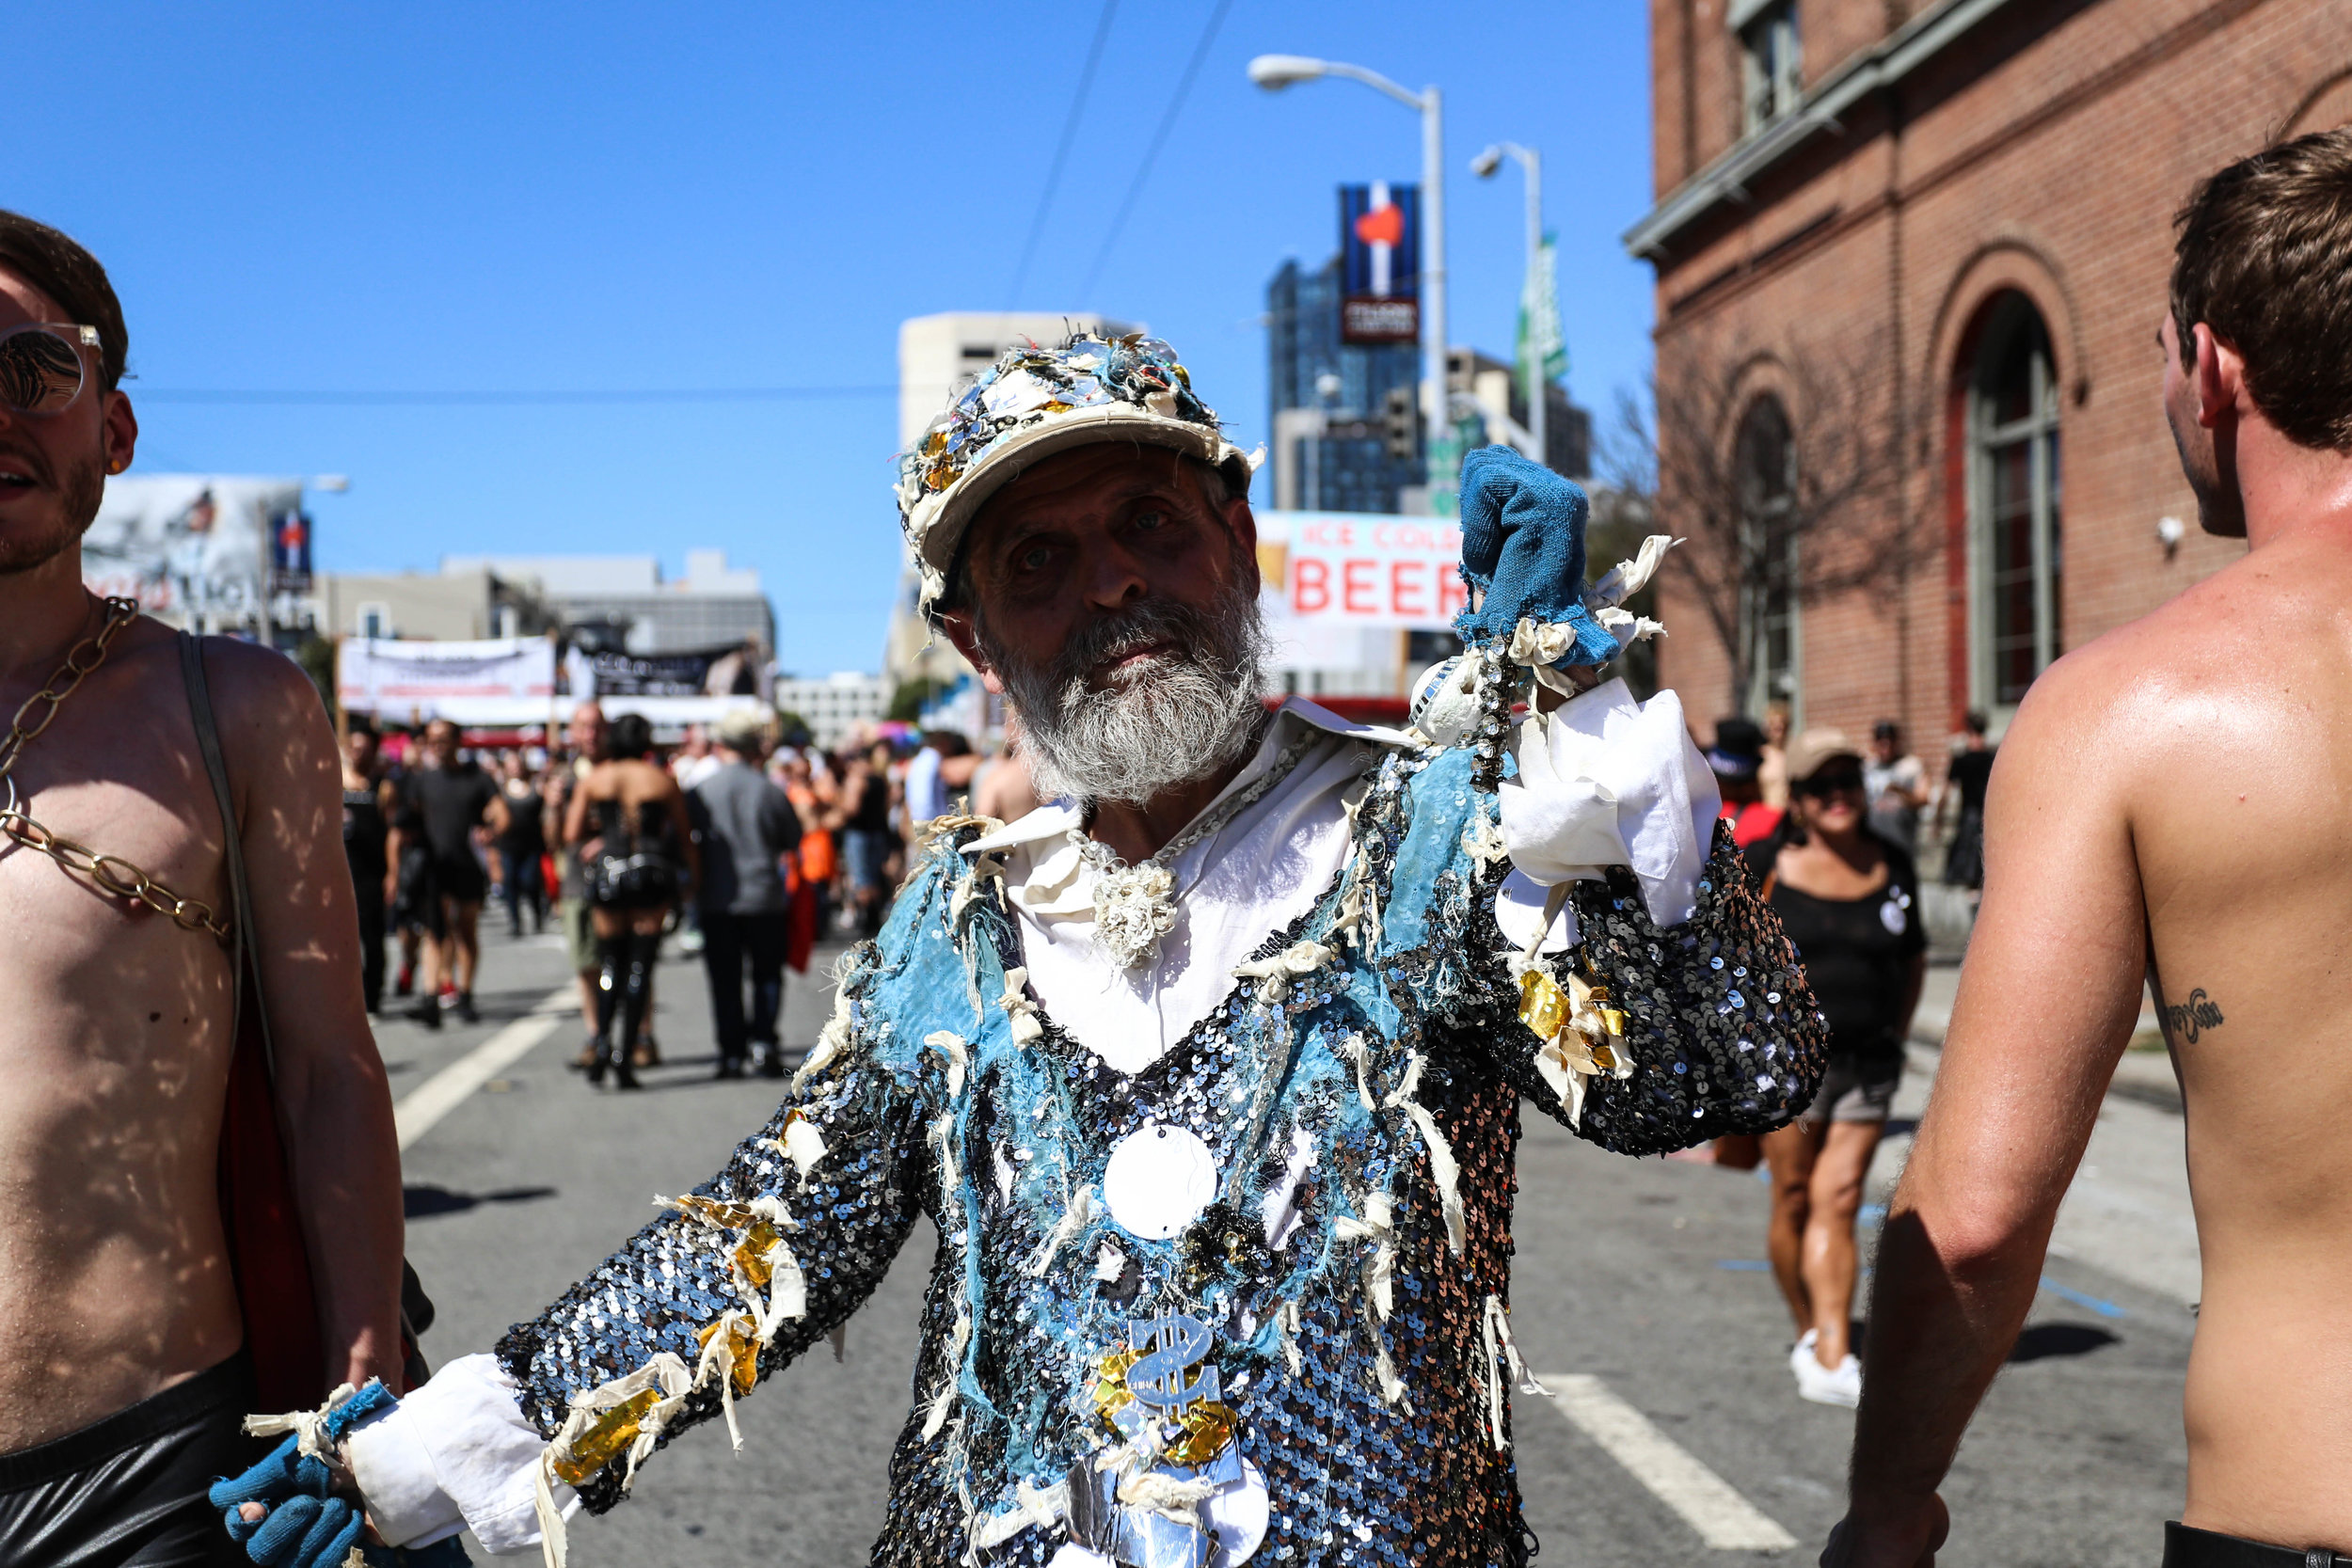 People came dressed in their very best for the Folsom Street Fair where hundreds gathered for the festivities, San Francisco, California, Sunday, Sept. 25, 2016. (Jessica Webb)